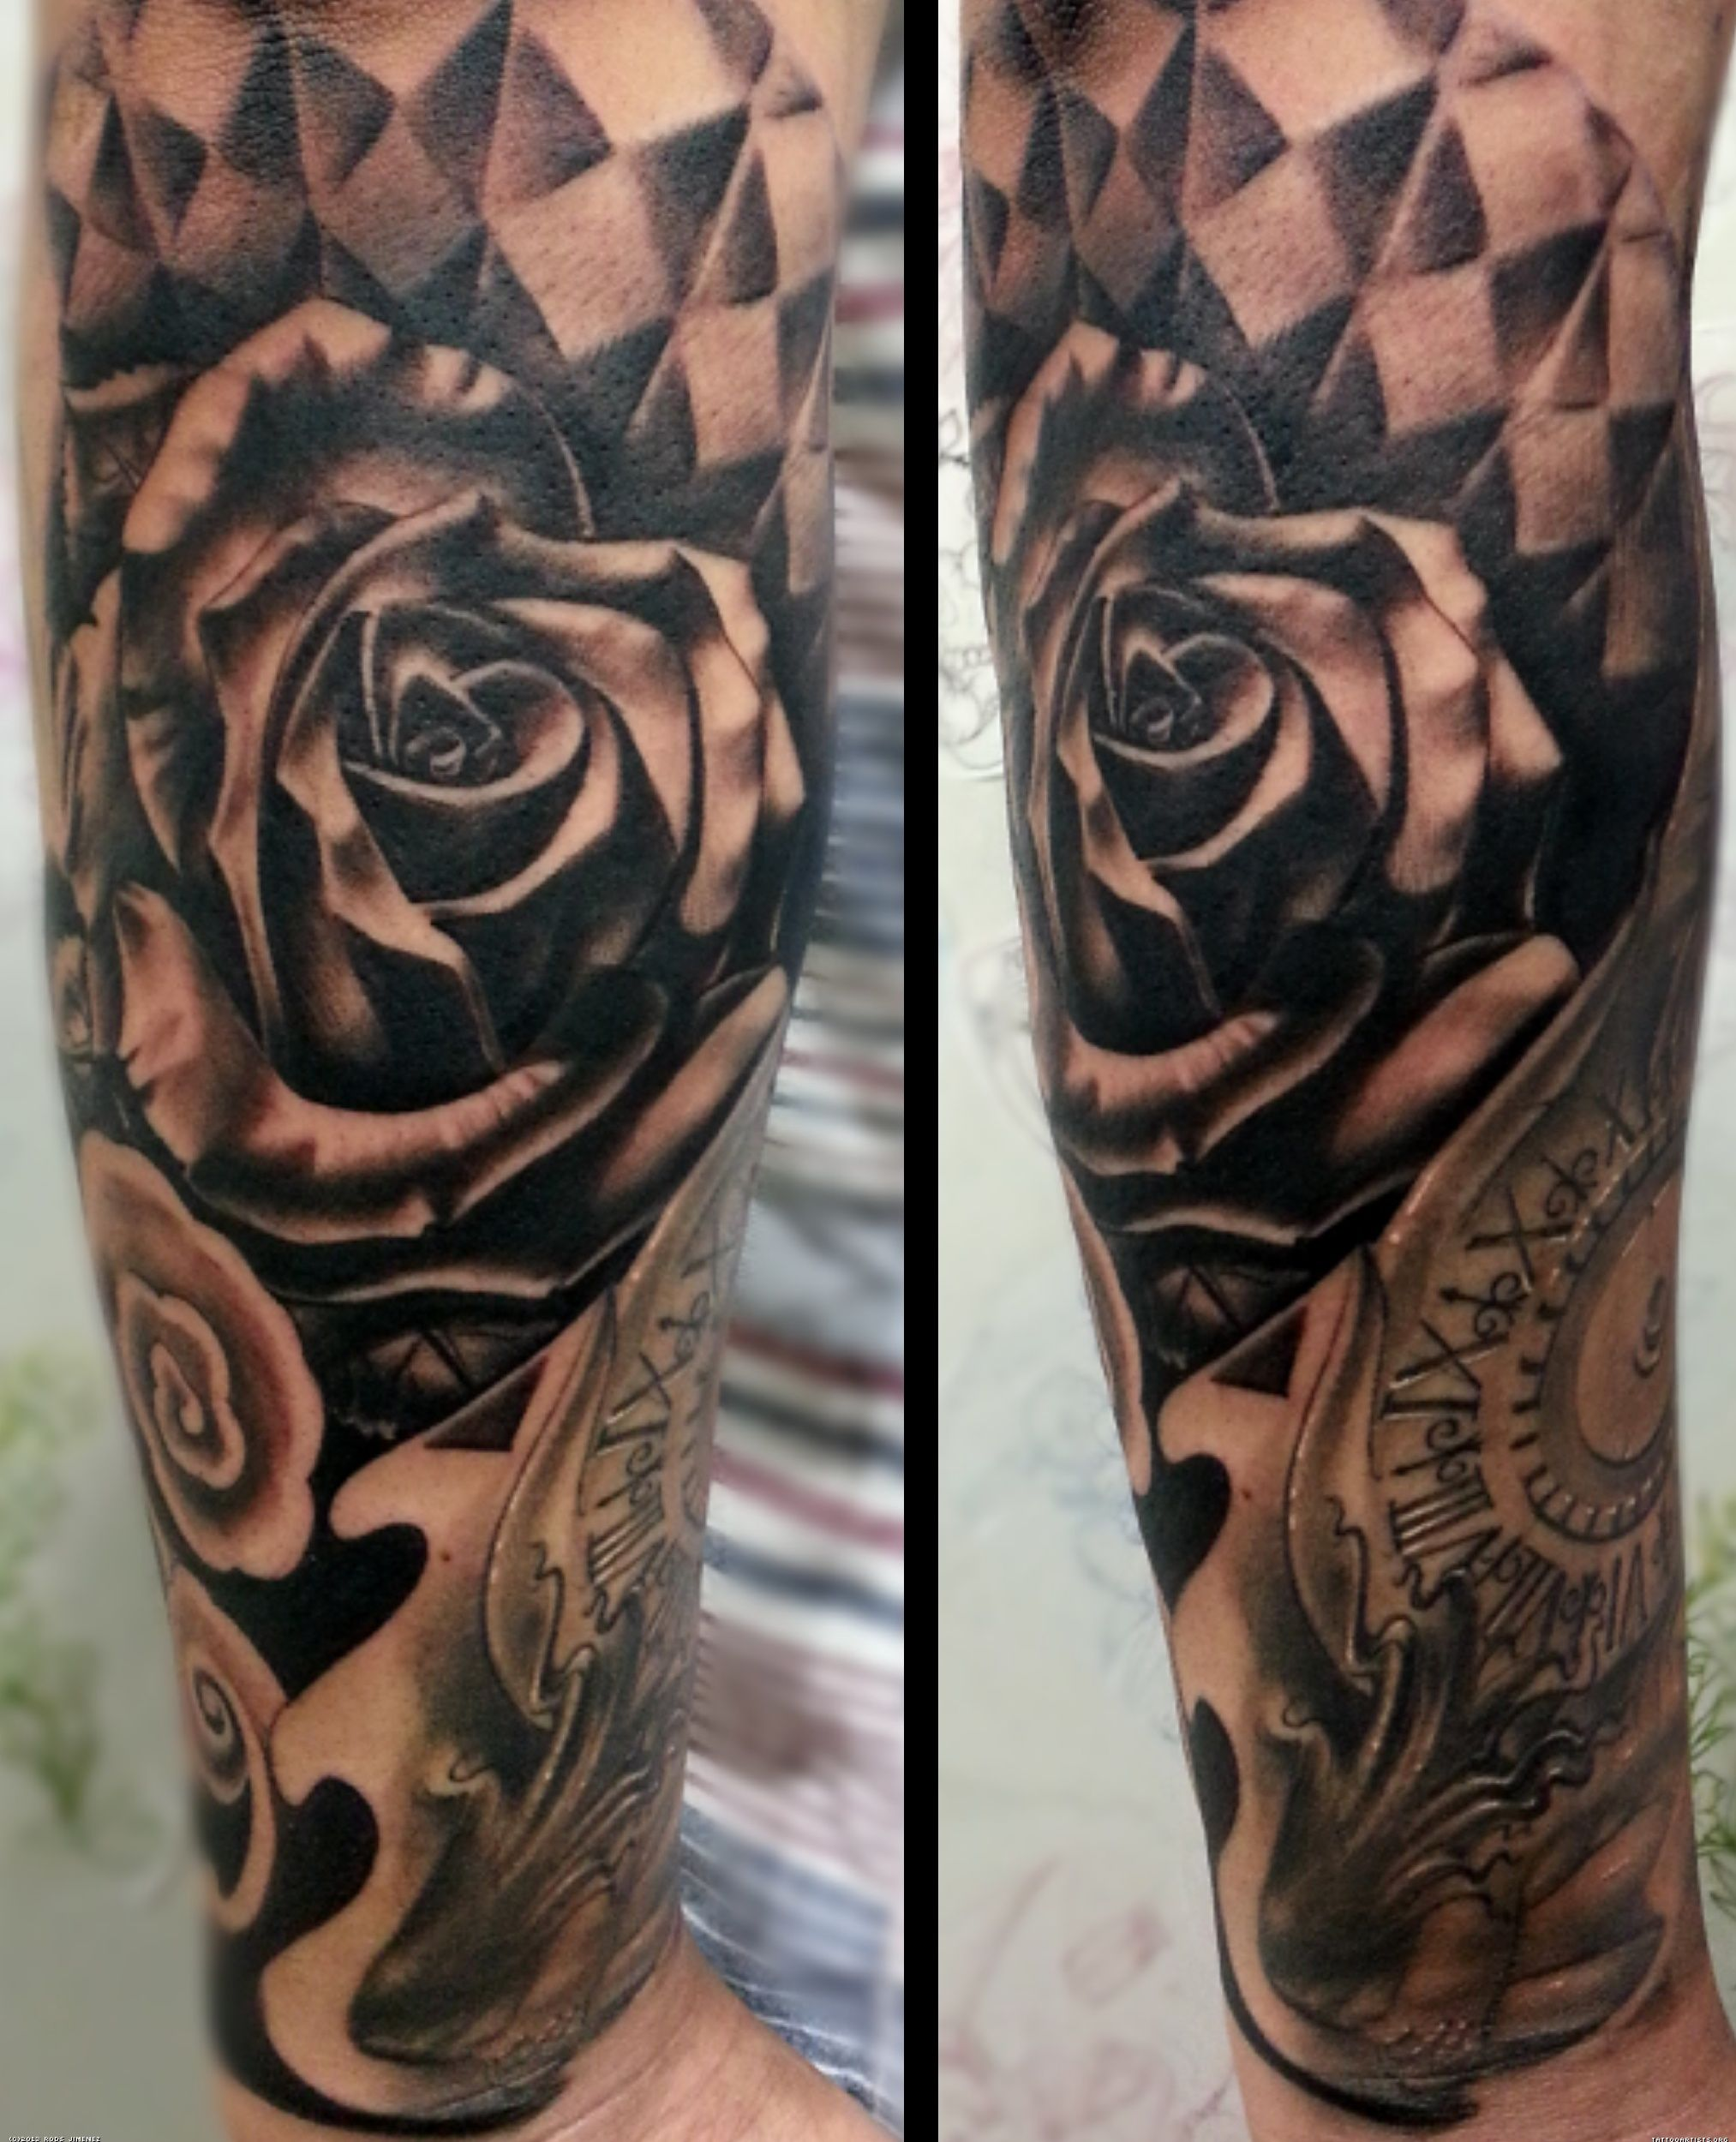 Clock forearm black rose sleeve tattoo - Square Rose Tattoo Tattoo Artists Org